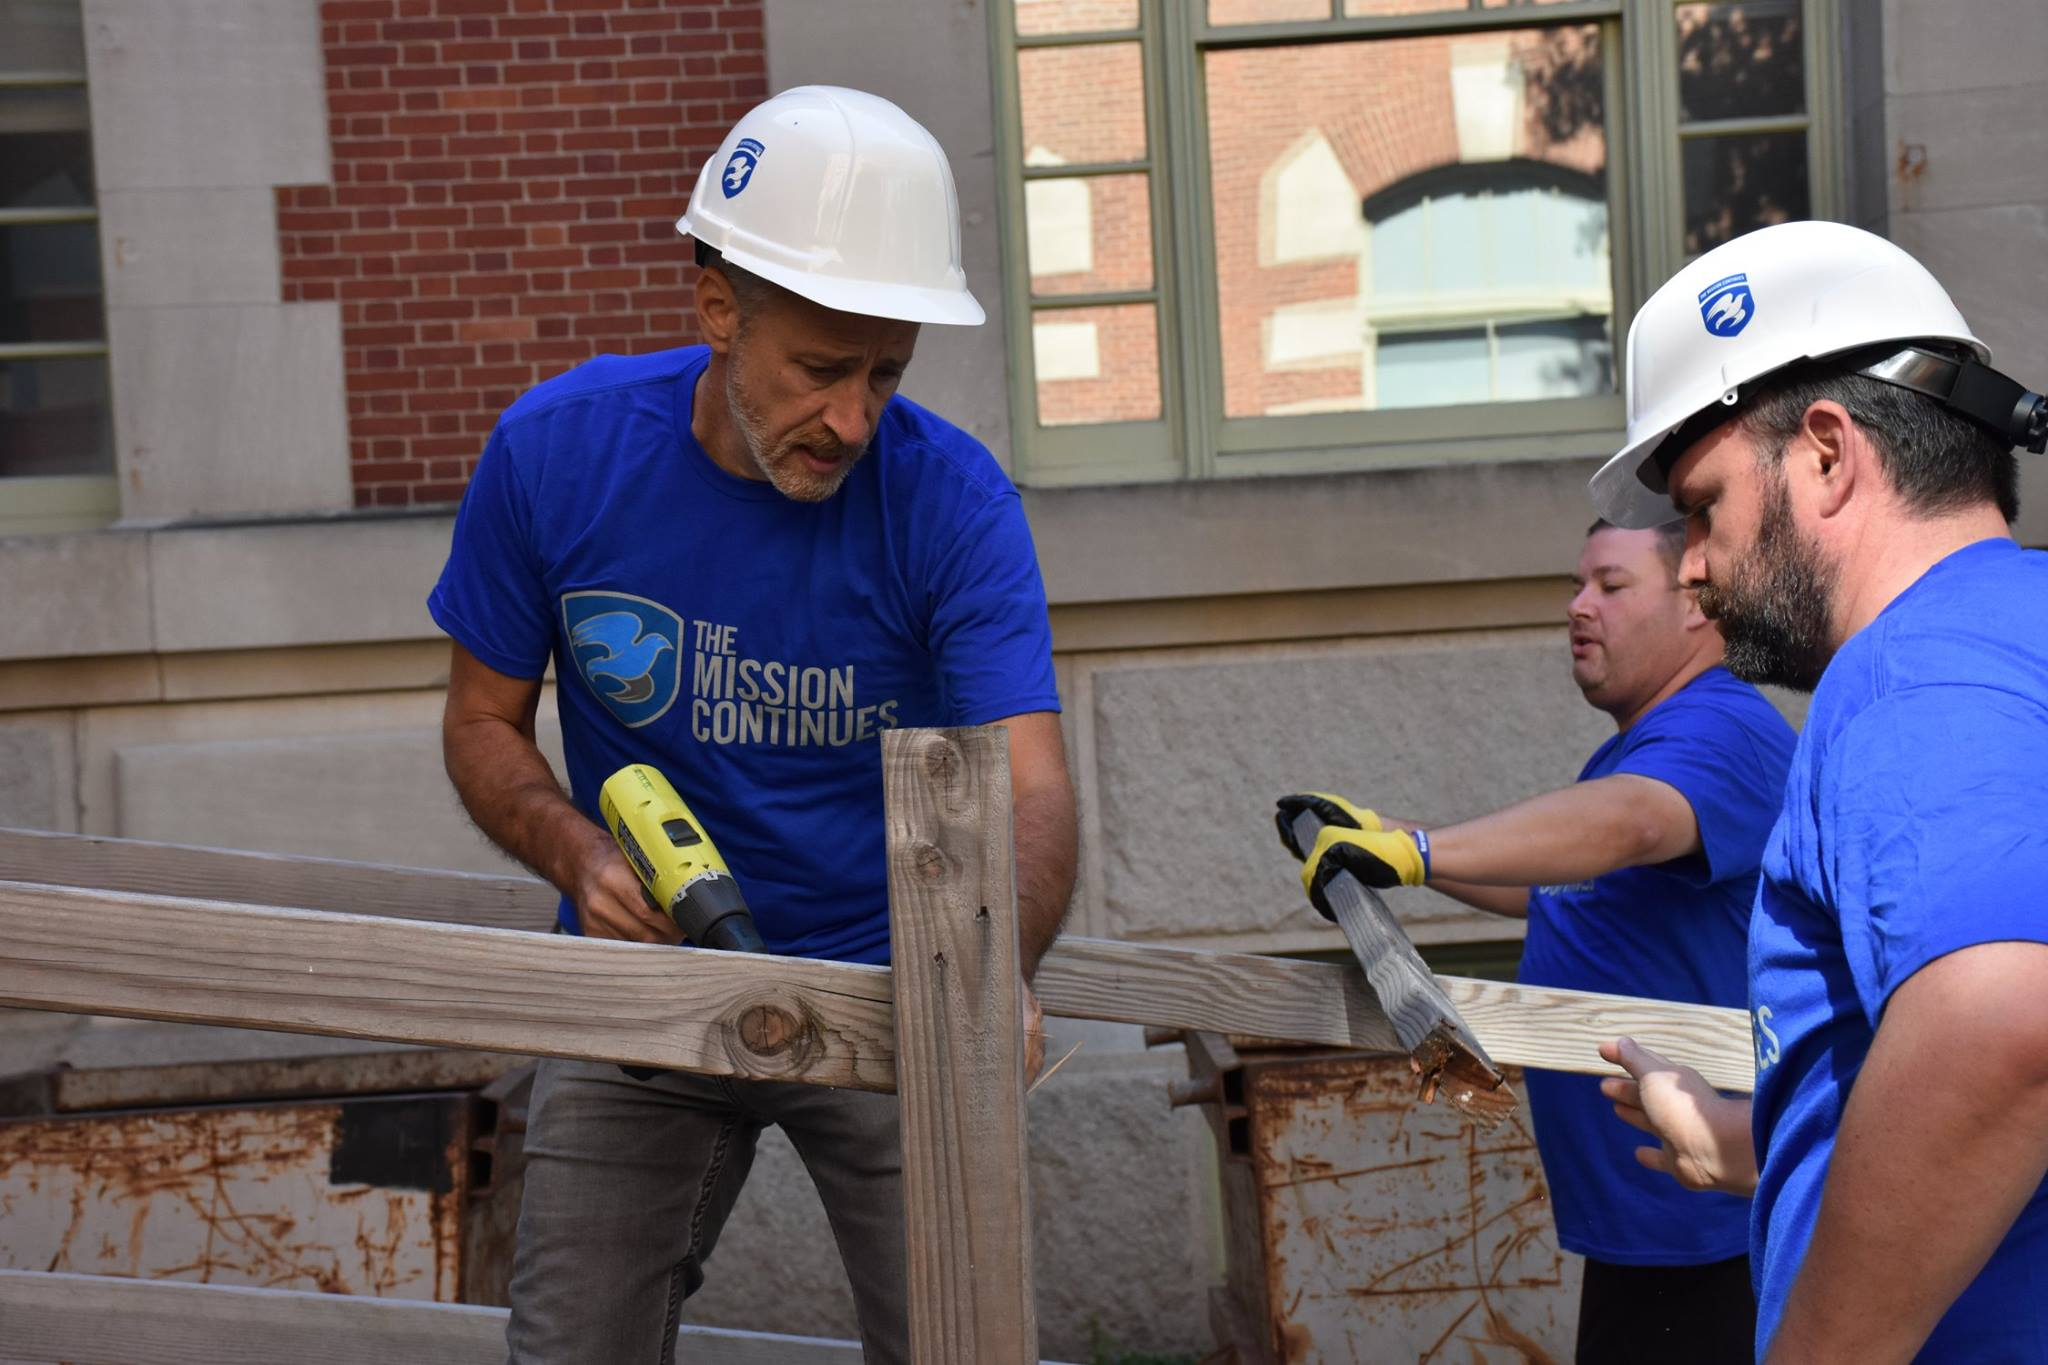 Jon Stewart and veterans with The Mission Continues serving at Ellis Island in honor of 9/11